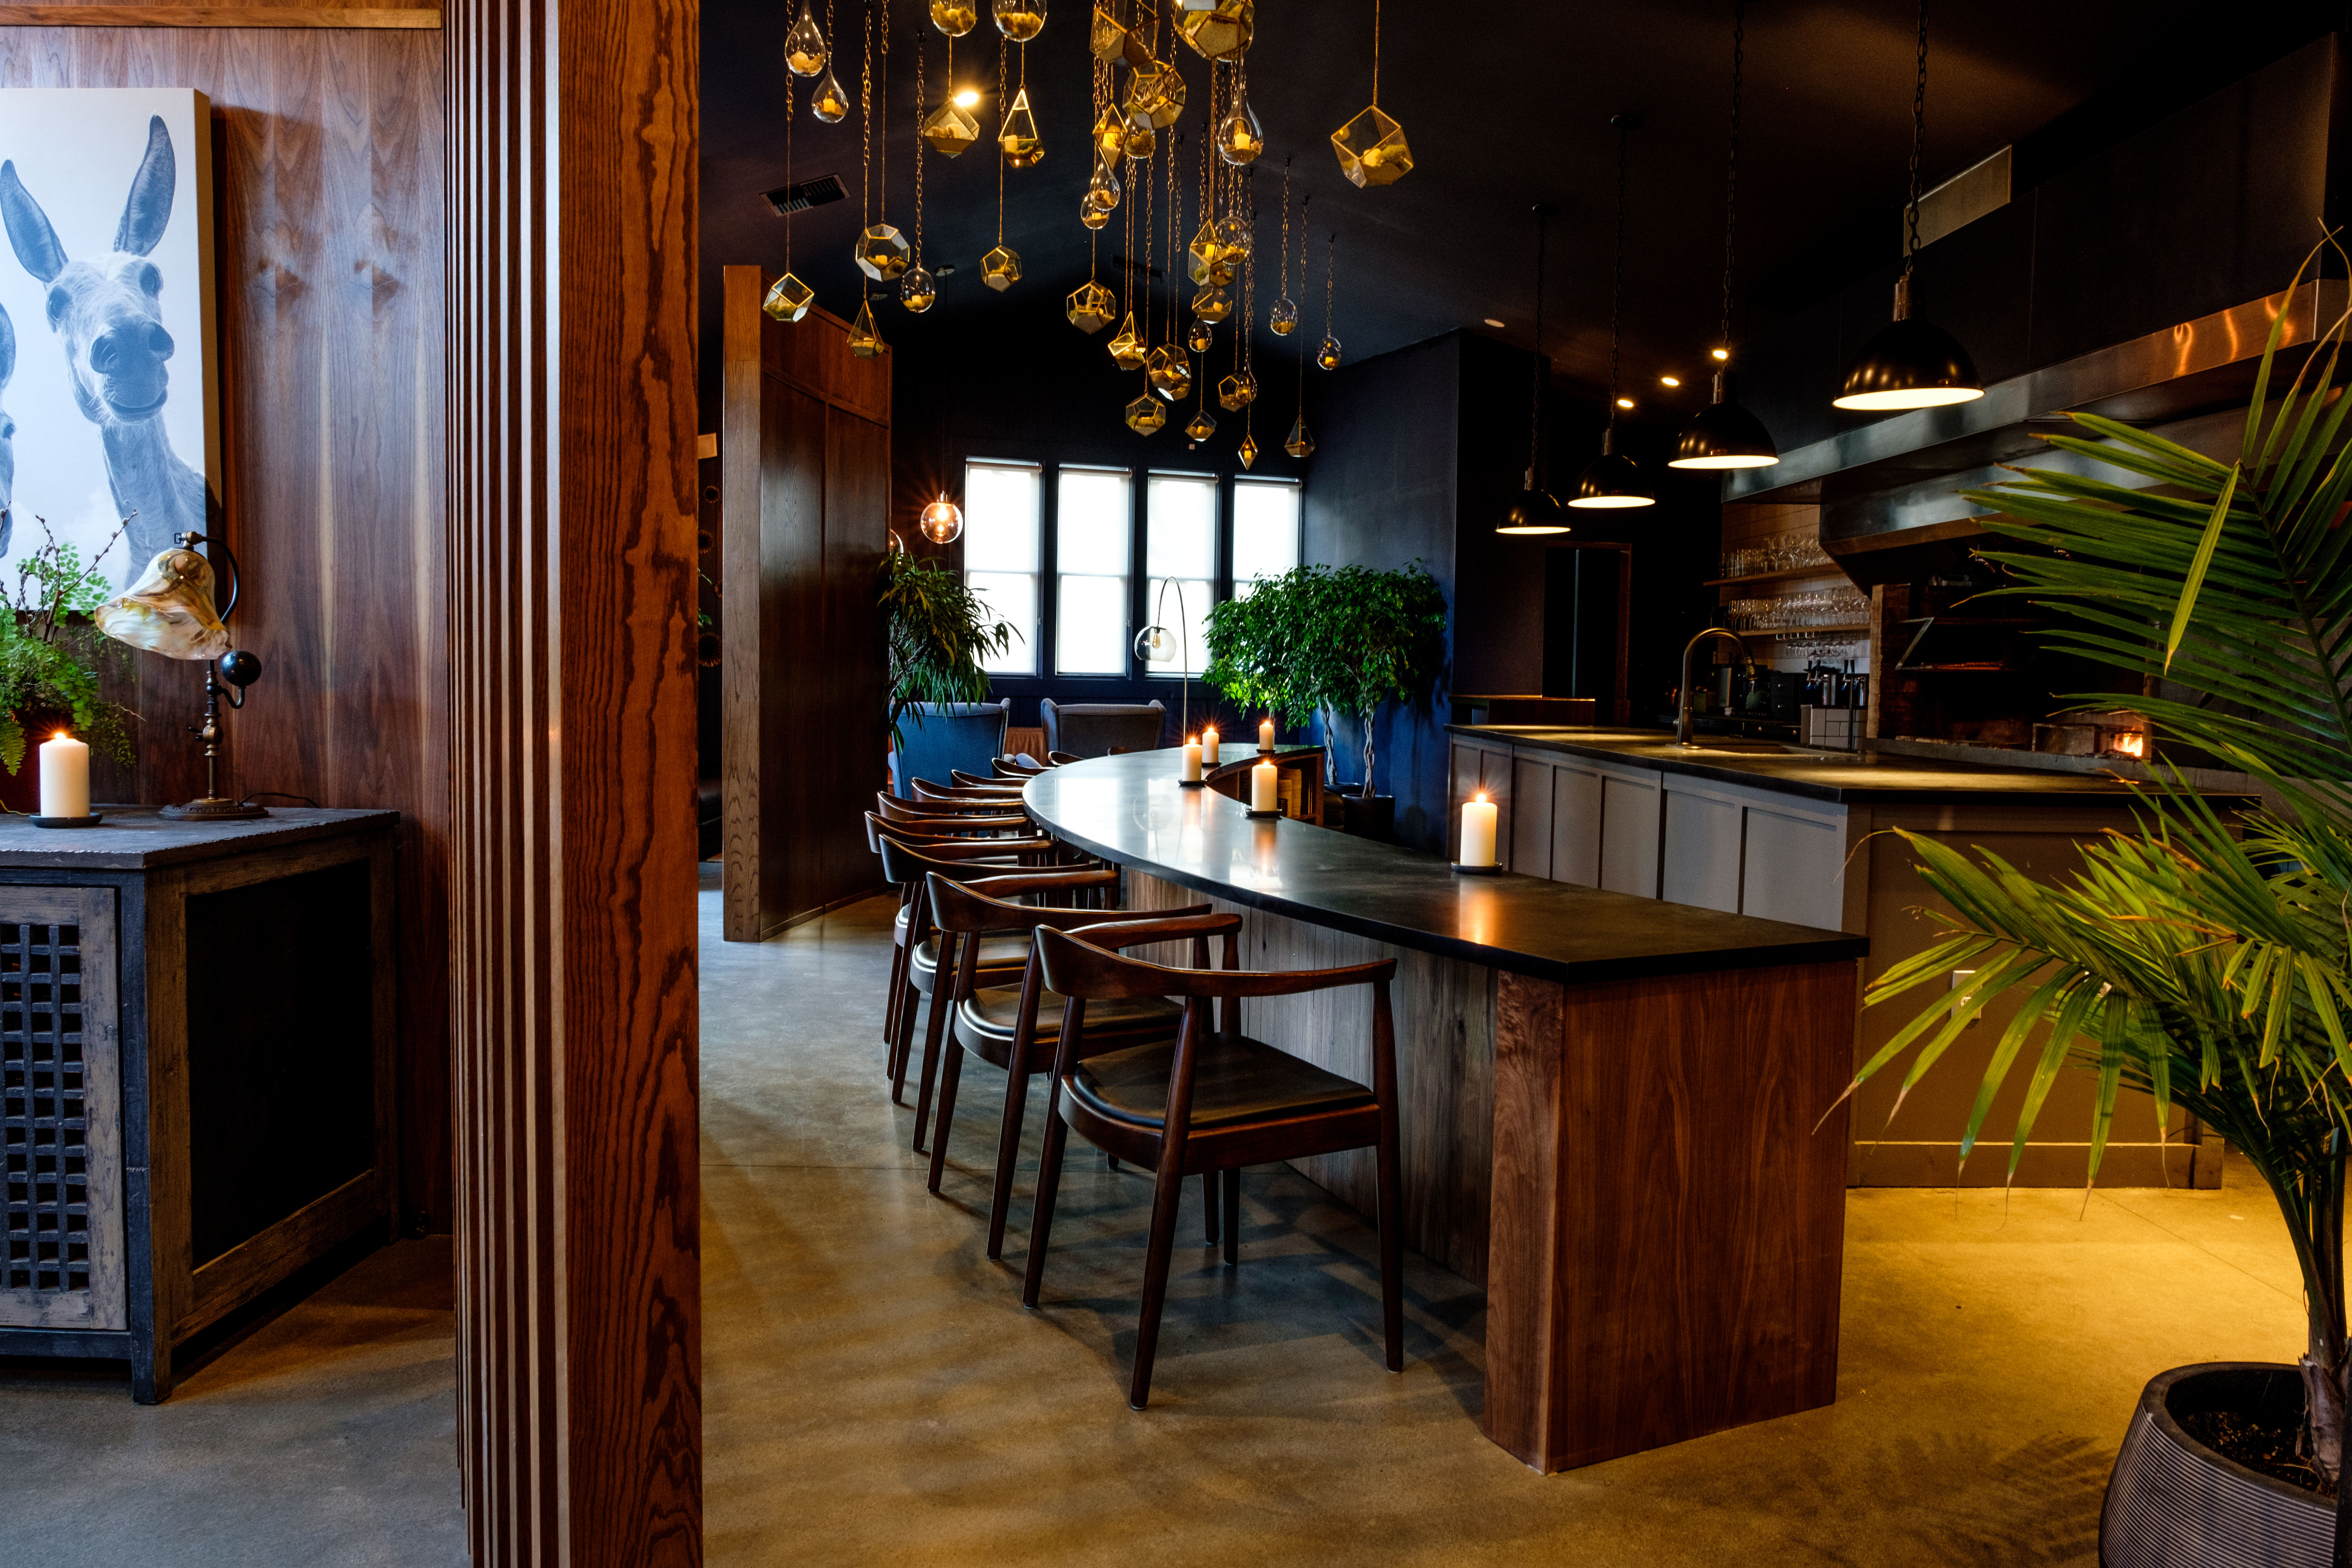 The plant-filled dining room at Tarsan i Jane, with dangling lights and a dark wood counter.